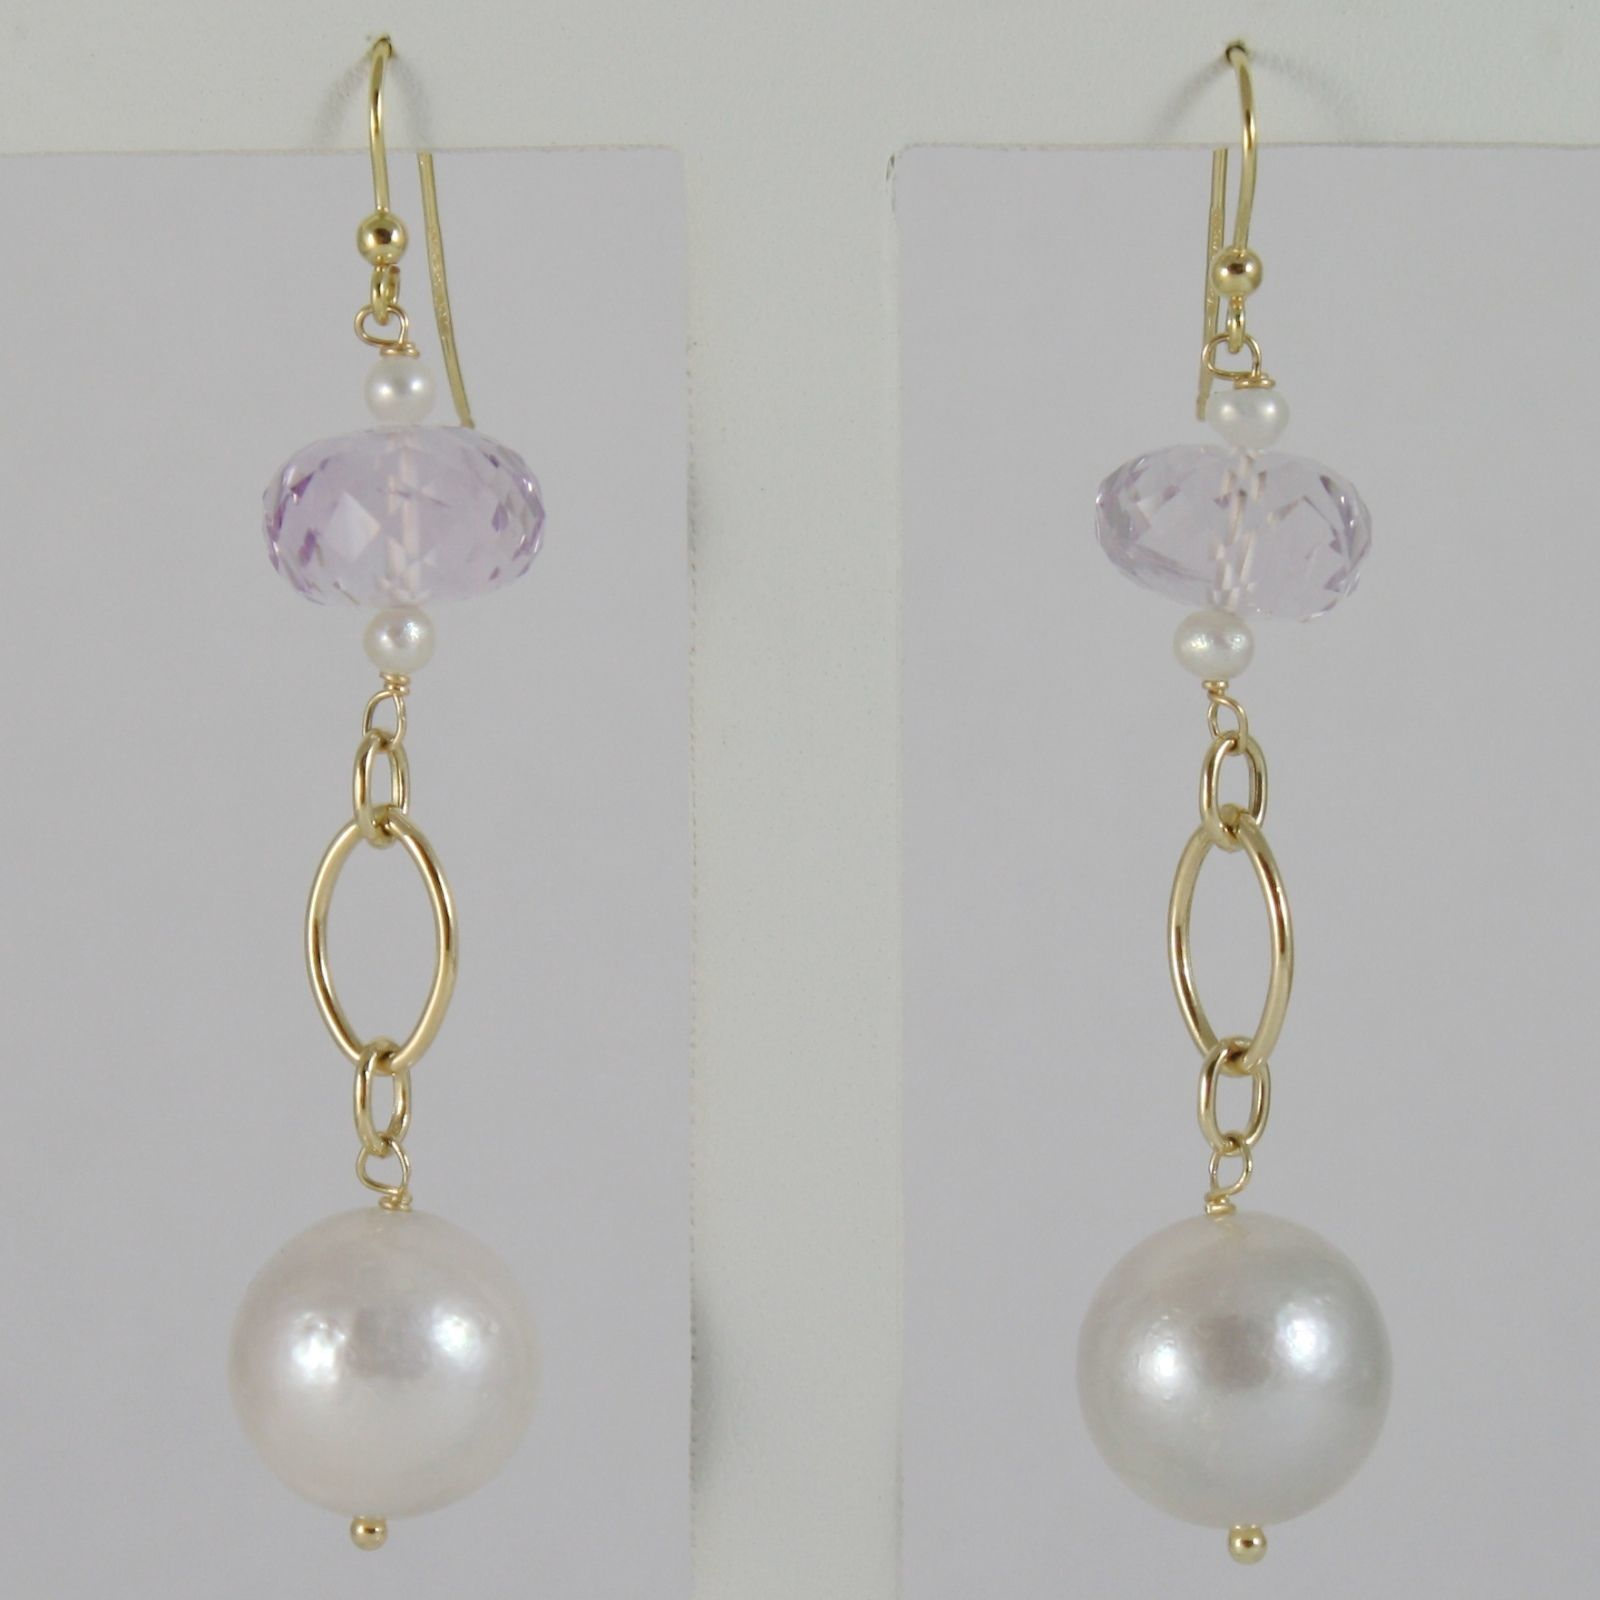 YELLOW GOLD EARRINGS 750 18K HANGING 6 CM, AMETHYST CUT CUSHION AND PEARLS